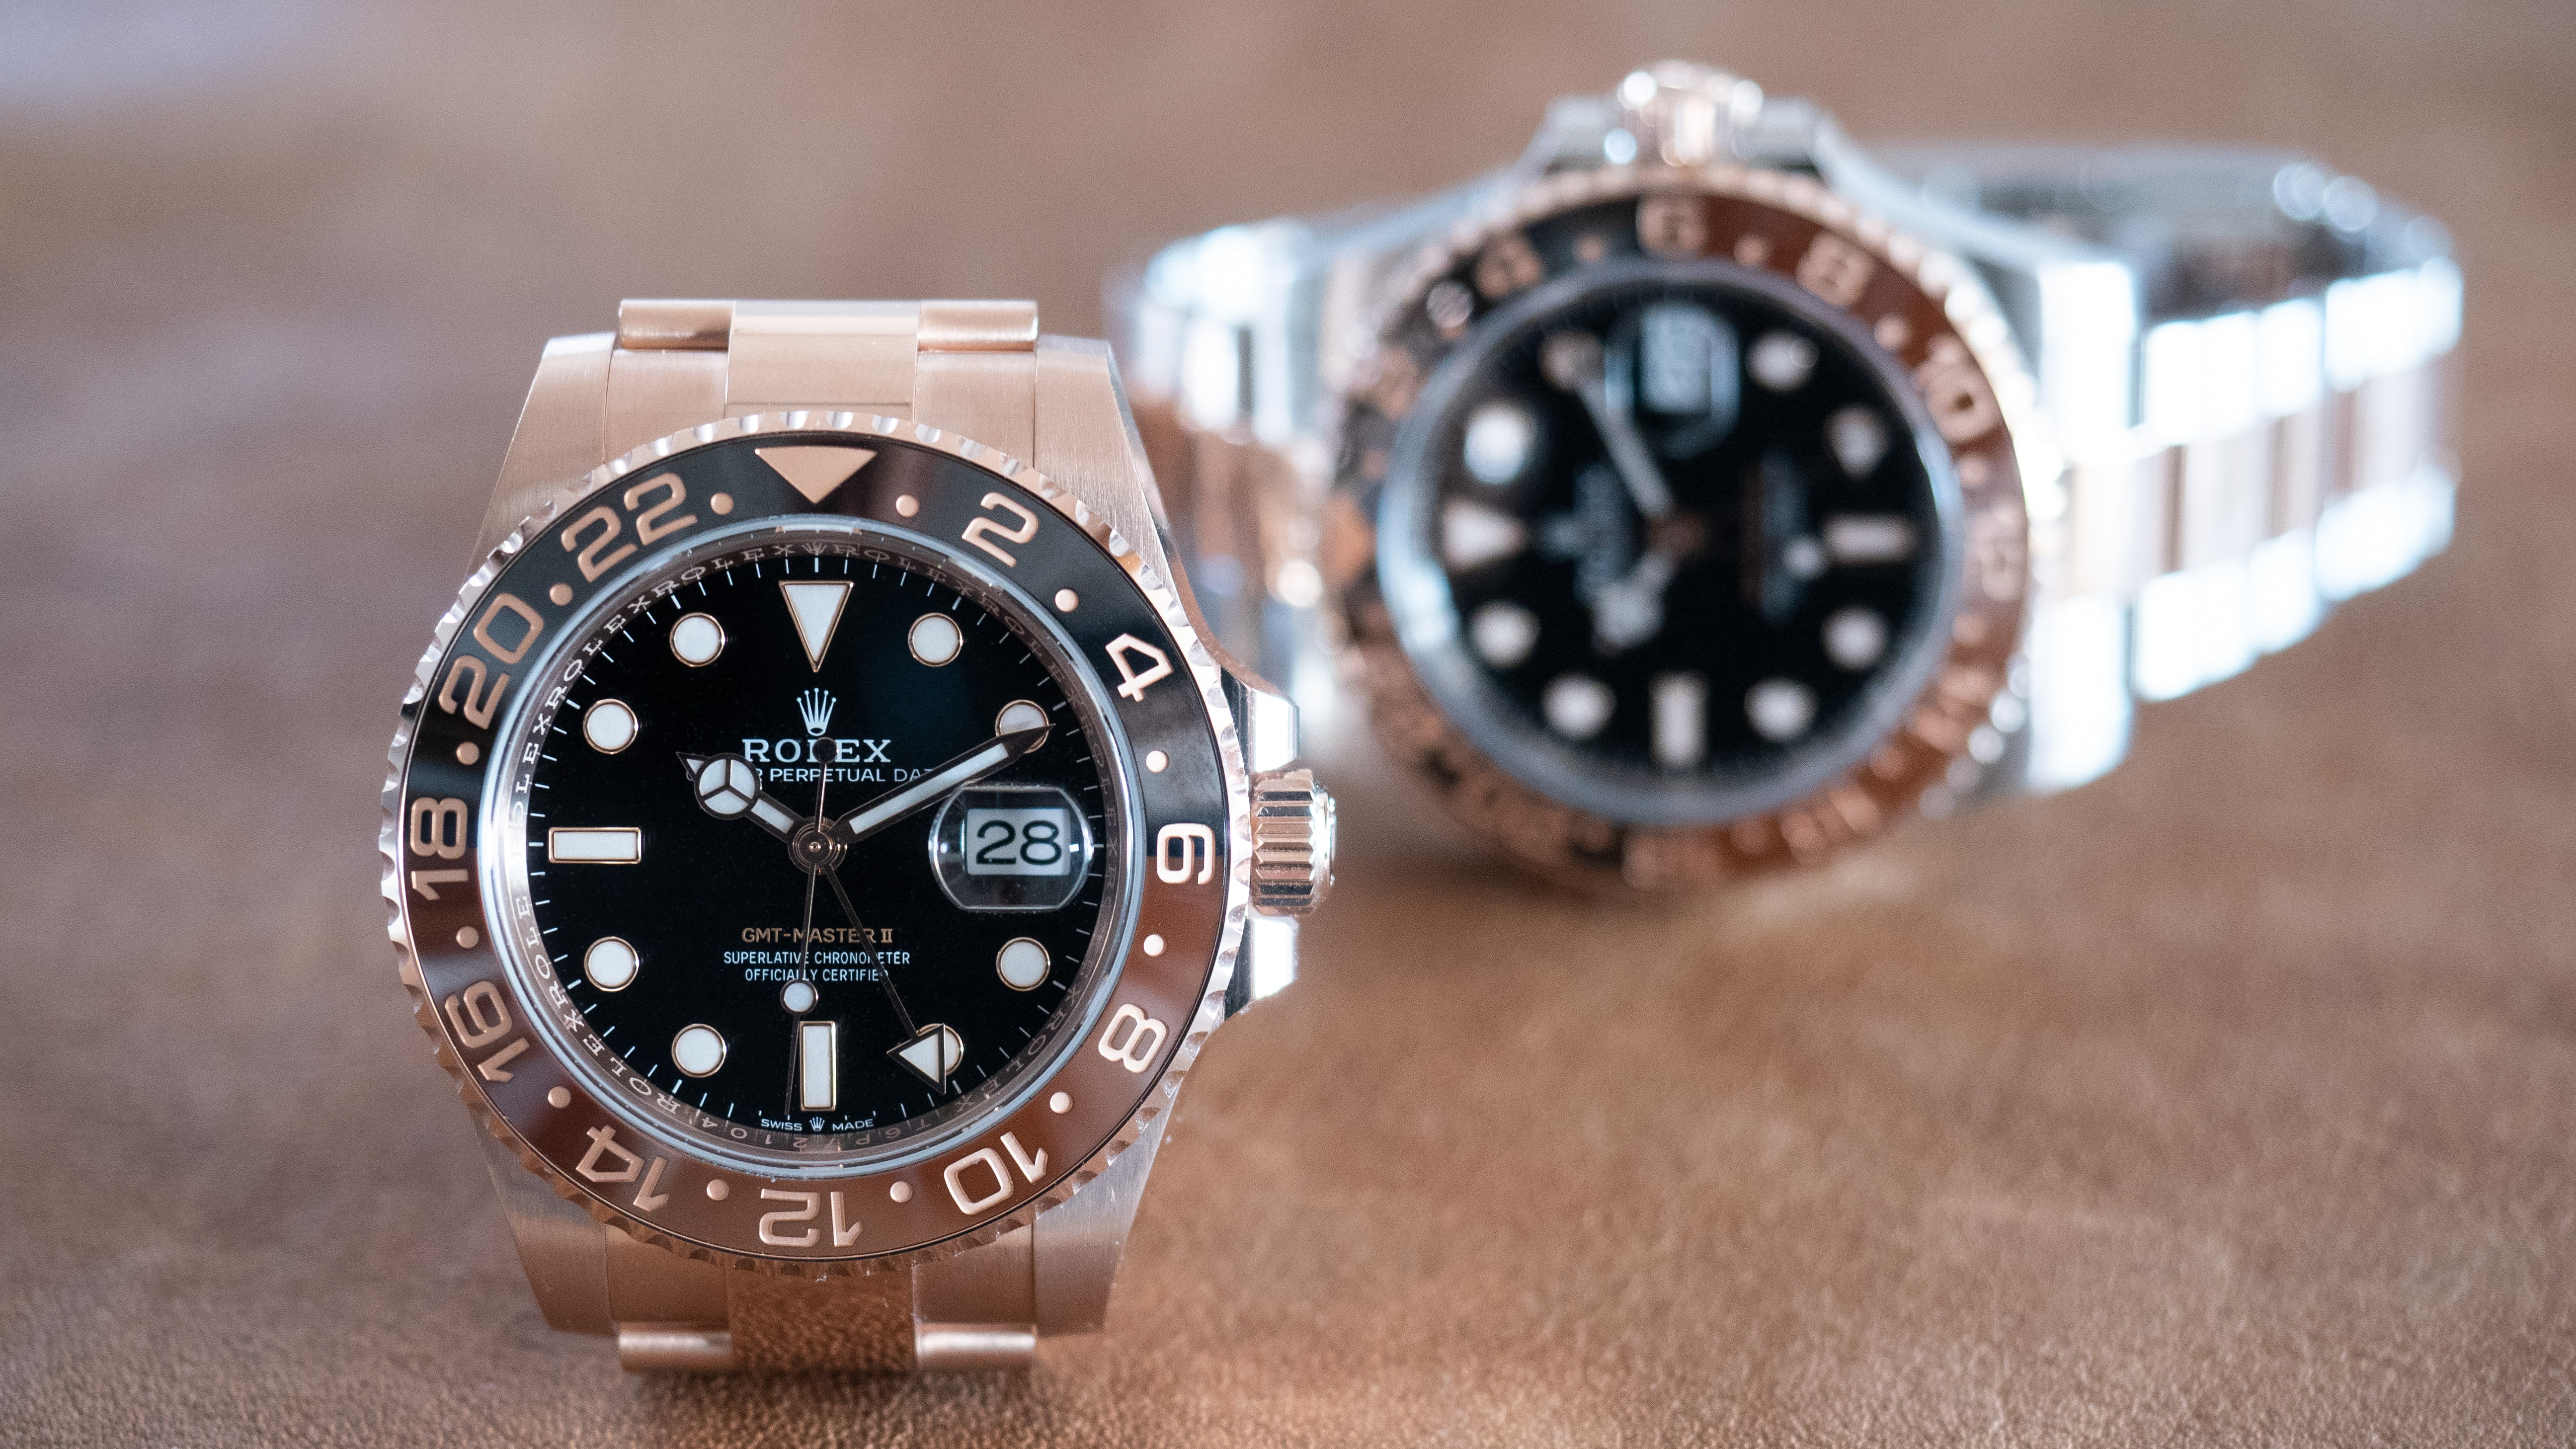 7db1637c800 Hands-On The Rolex Everose GMT Master II Vs. The GMT Master II In  Oystersteel And Everose Gold